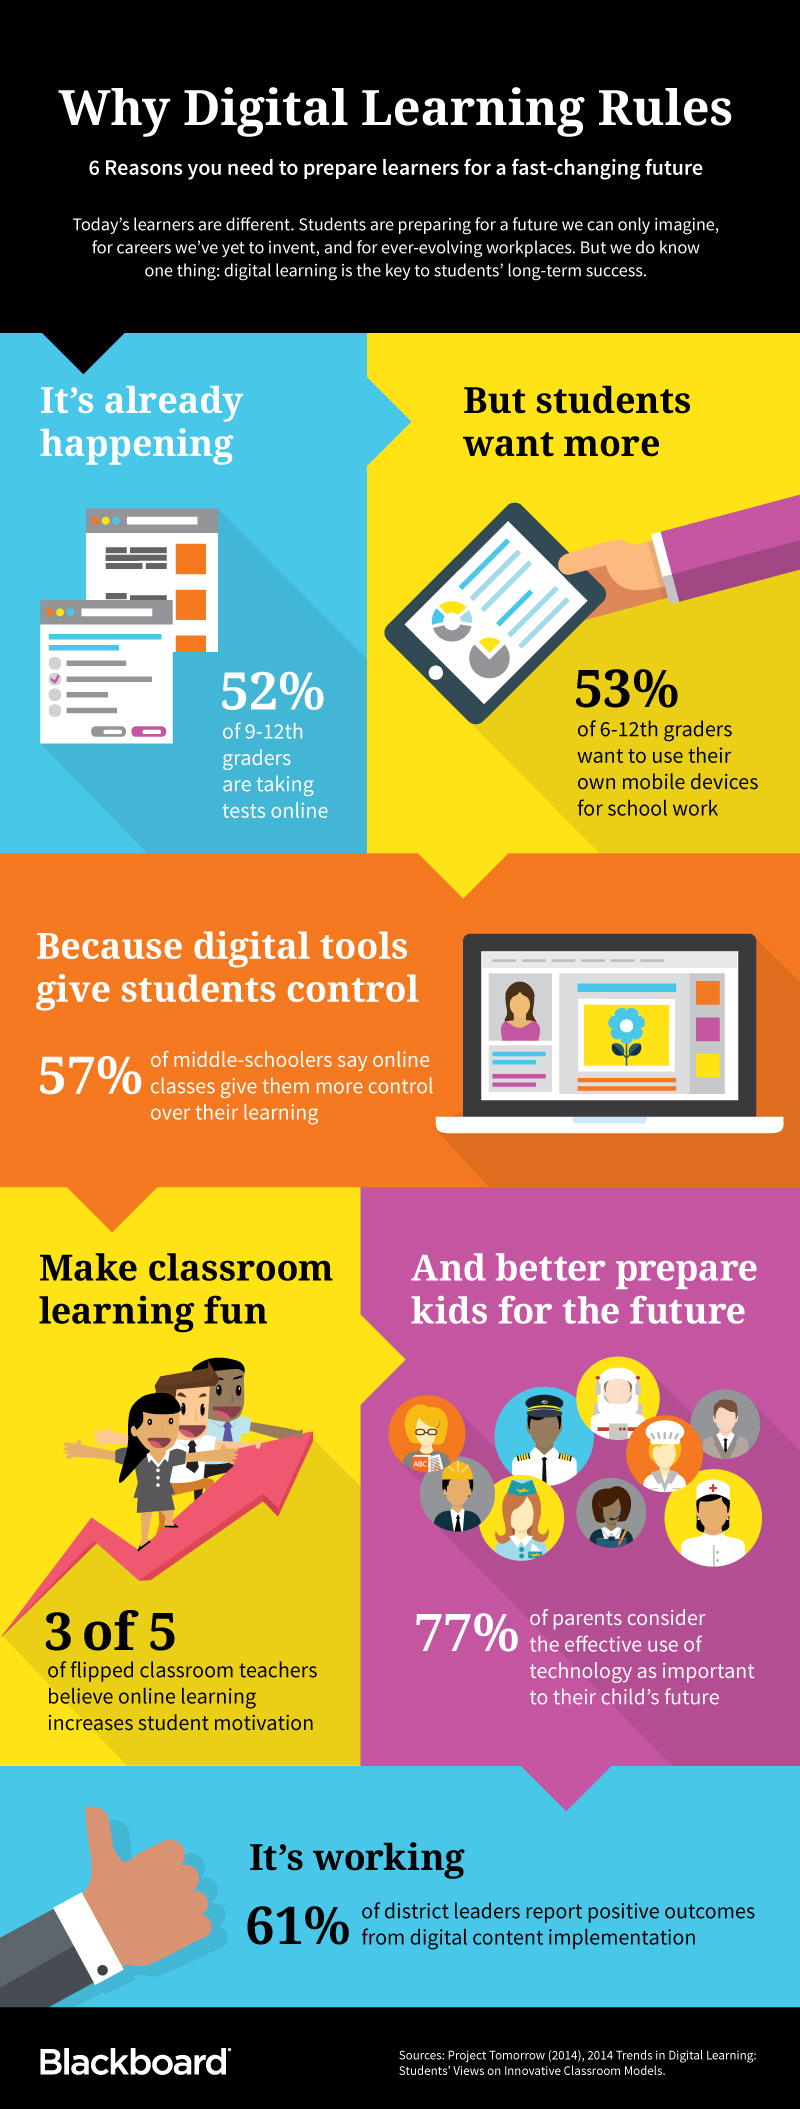 6 reasons why digital learning matters in K-12